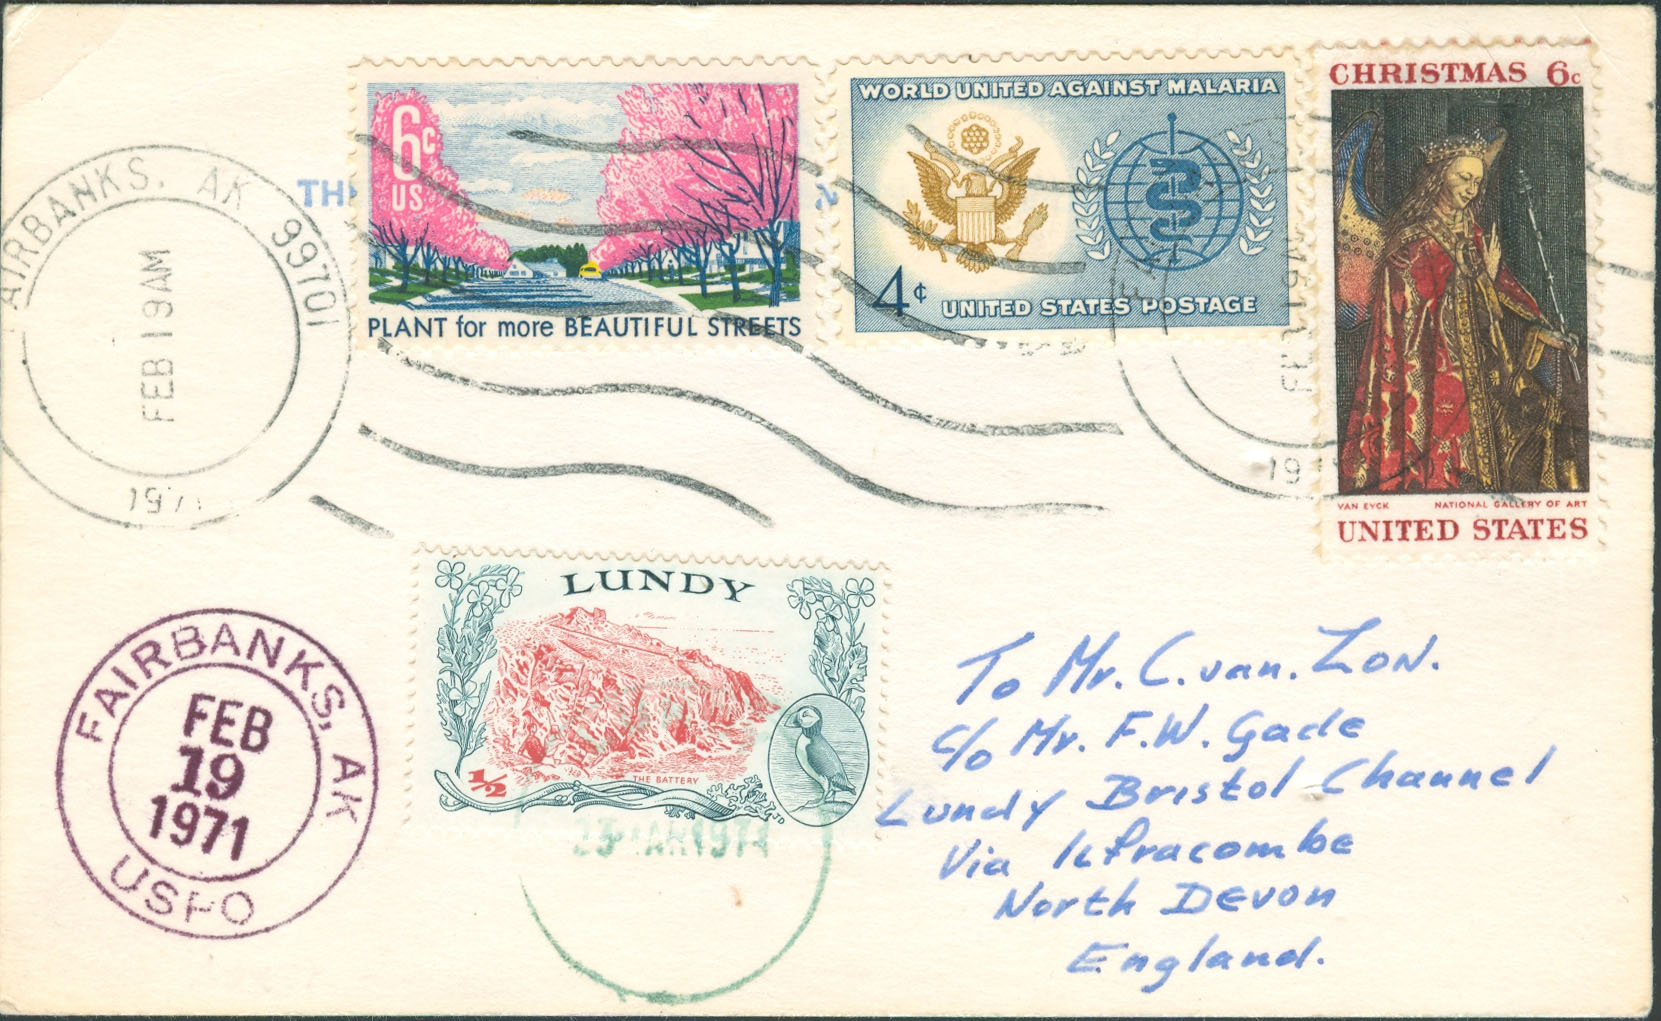 1971, February 19th, Fairbanks, AK to Lundy (Overpaid by 1¢)